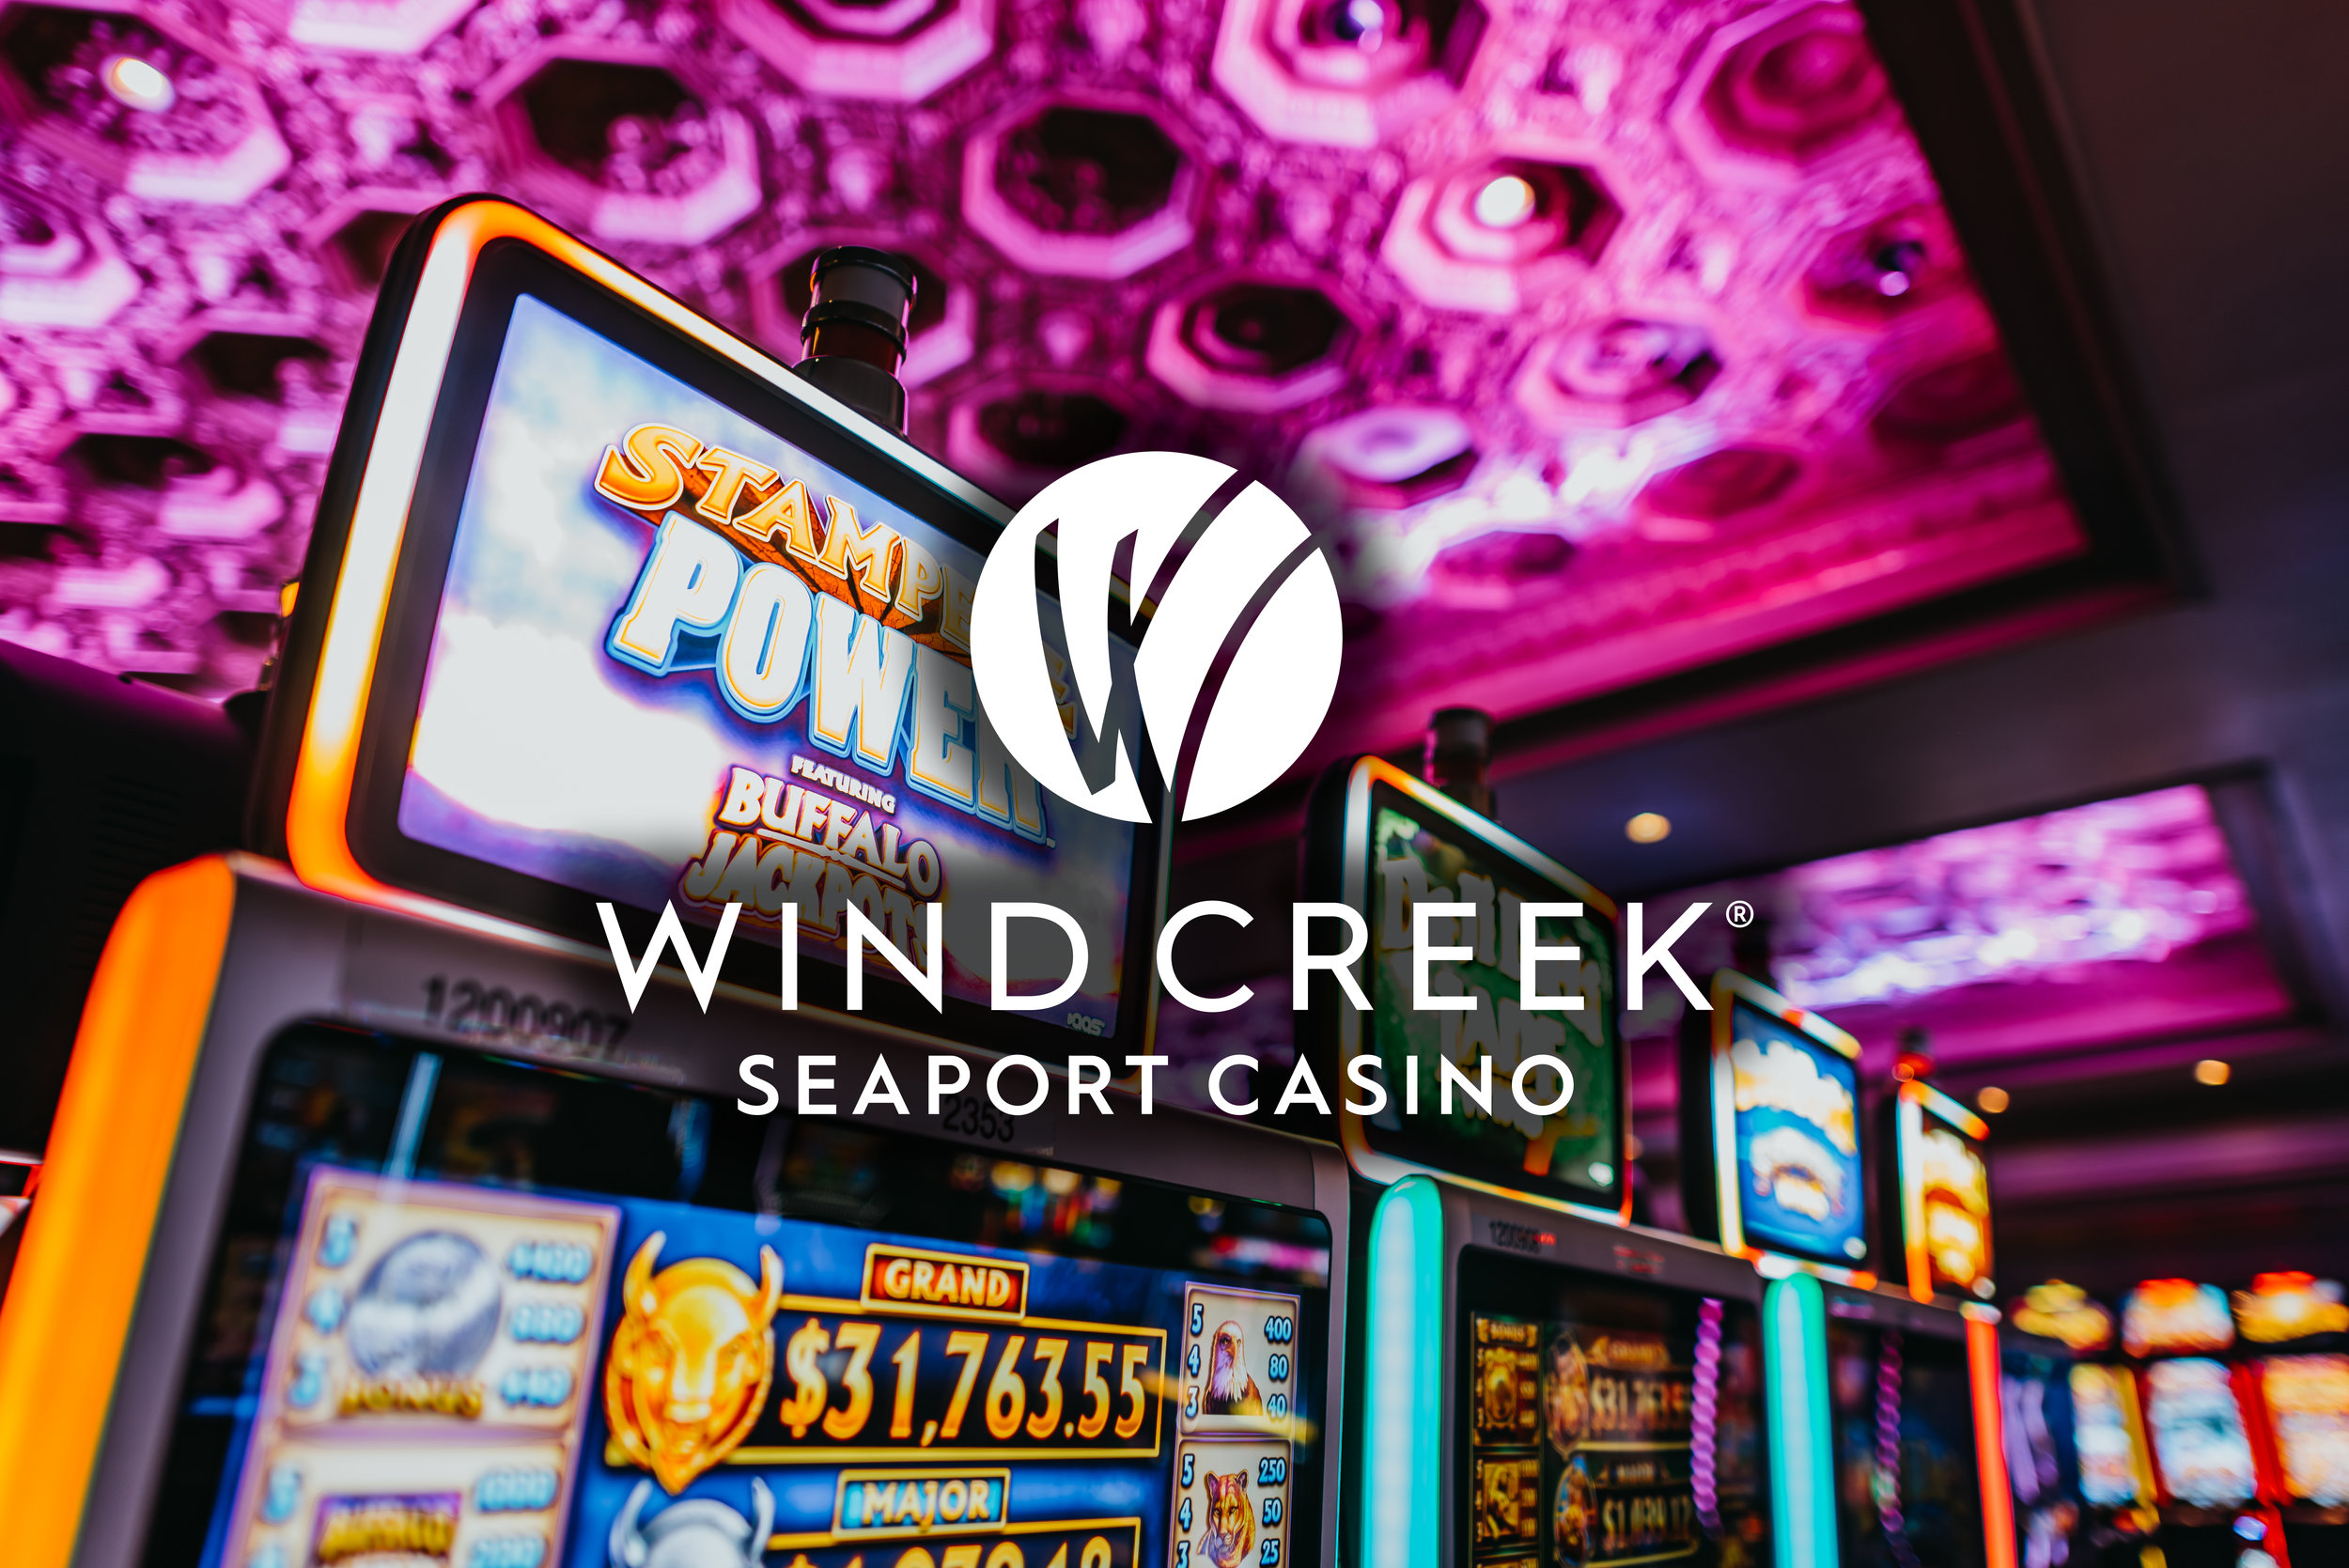 Wind Creek Seaport Casino